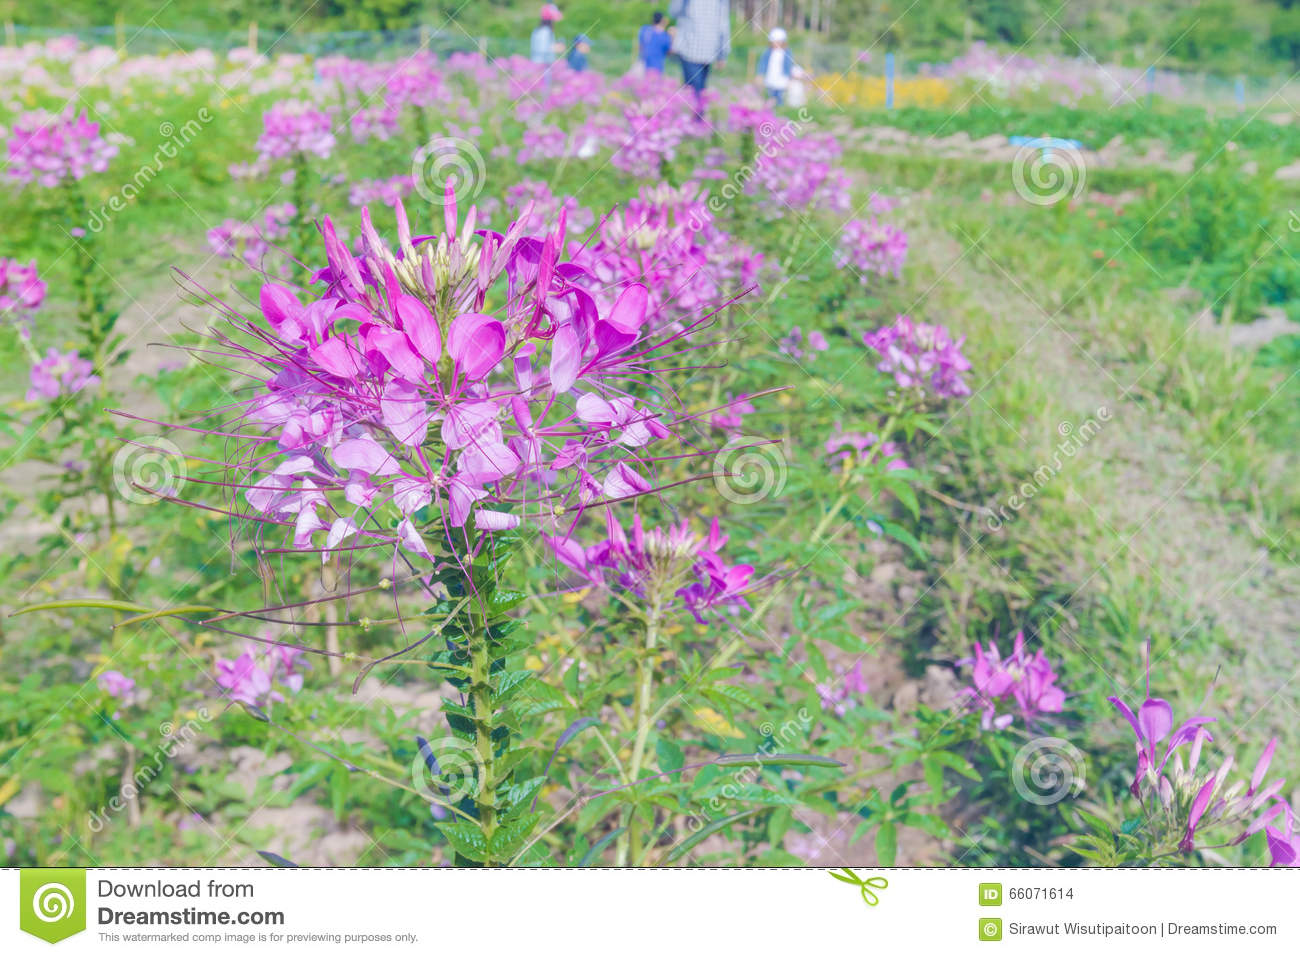 Spider Flower Or Cleome Hassleriana In Garden,soft Focus Stock.